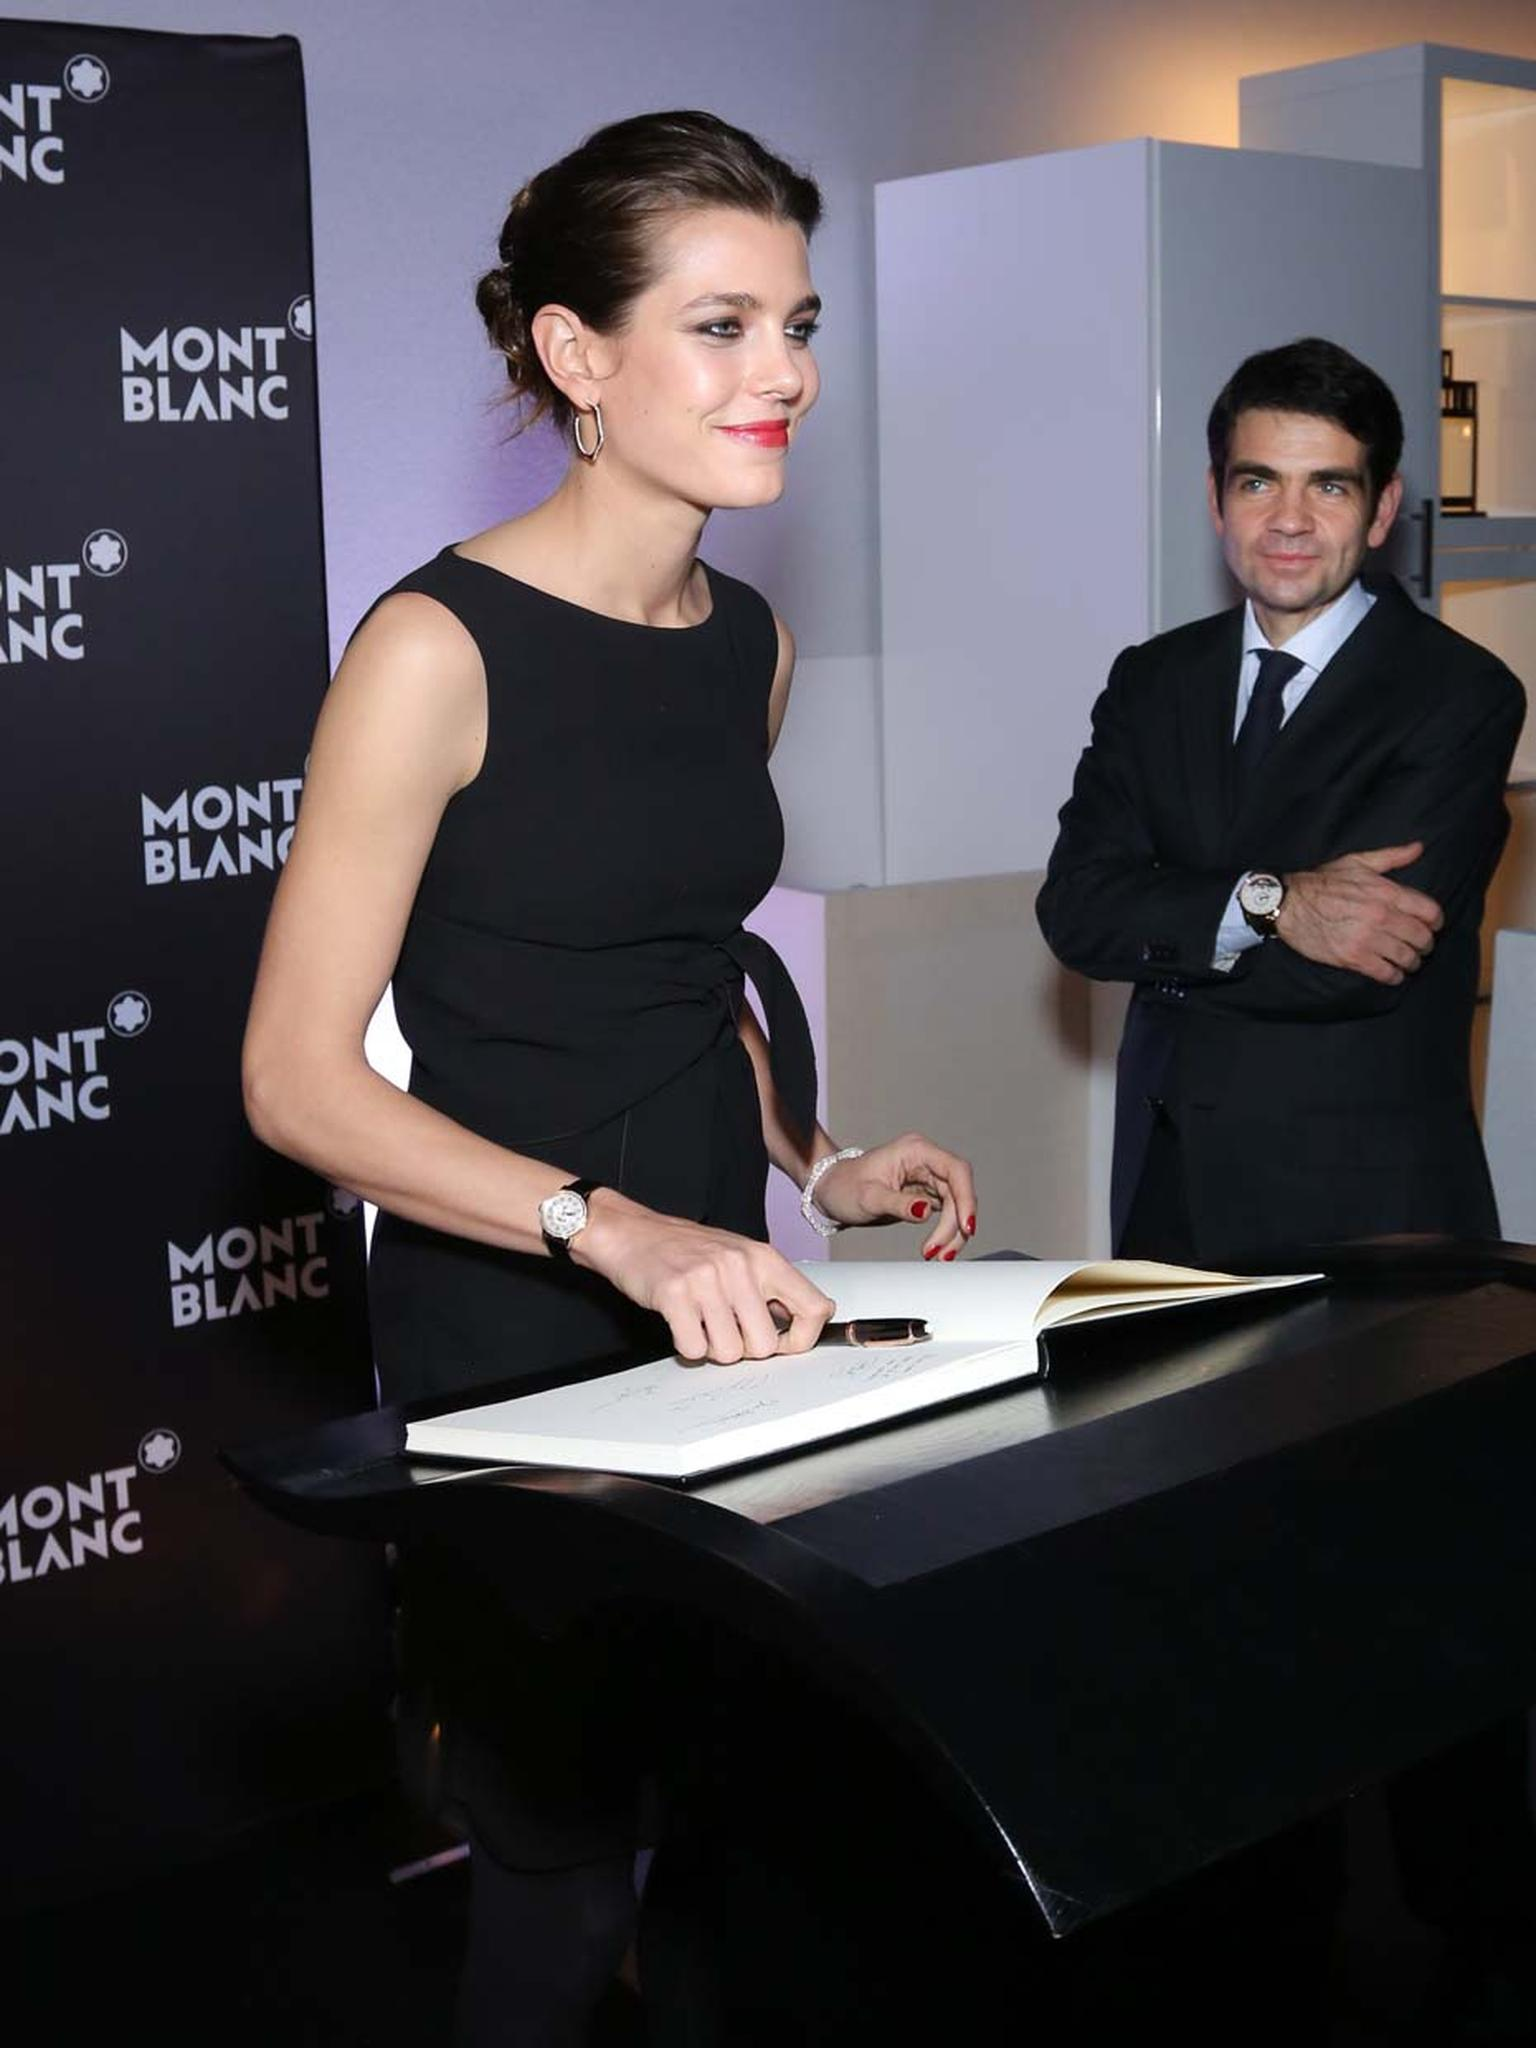 Charlotte Casiraghi is Montblanc's new global brand ambassador for timepieces, jewellery and writing instruments. The equestrian champion, writer and producer will appear in Montblanc's forthcoming advertising campaign.